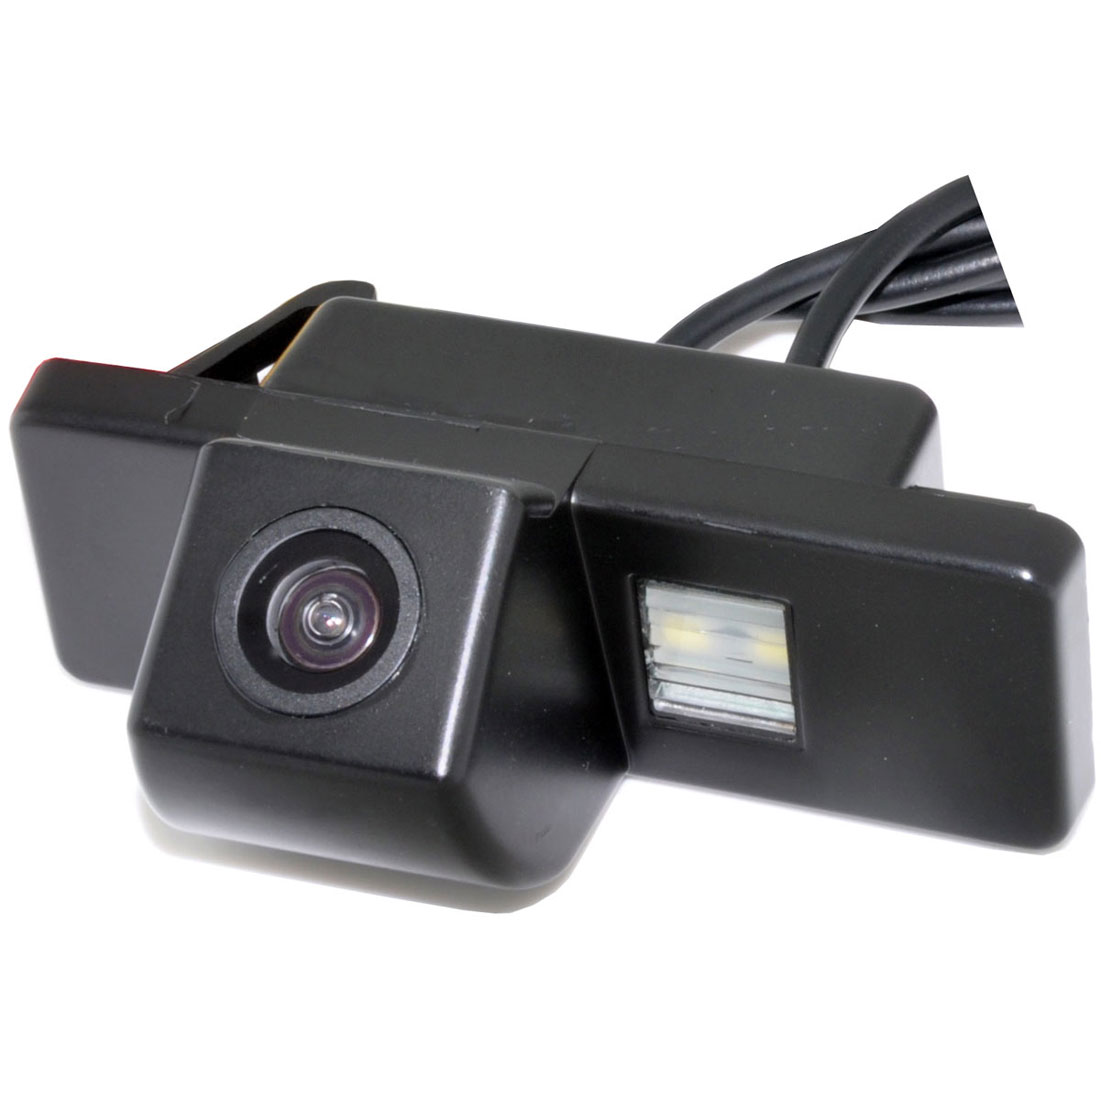 Car Rear View REVERSE font b CAMERA b font For NISSAN Juke QASHQAI Geniss Pathfinder Dualis